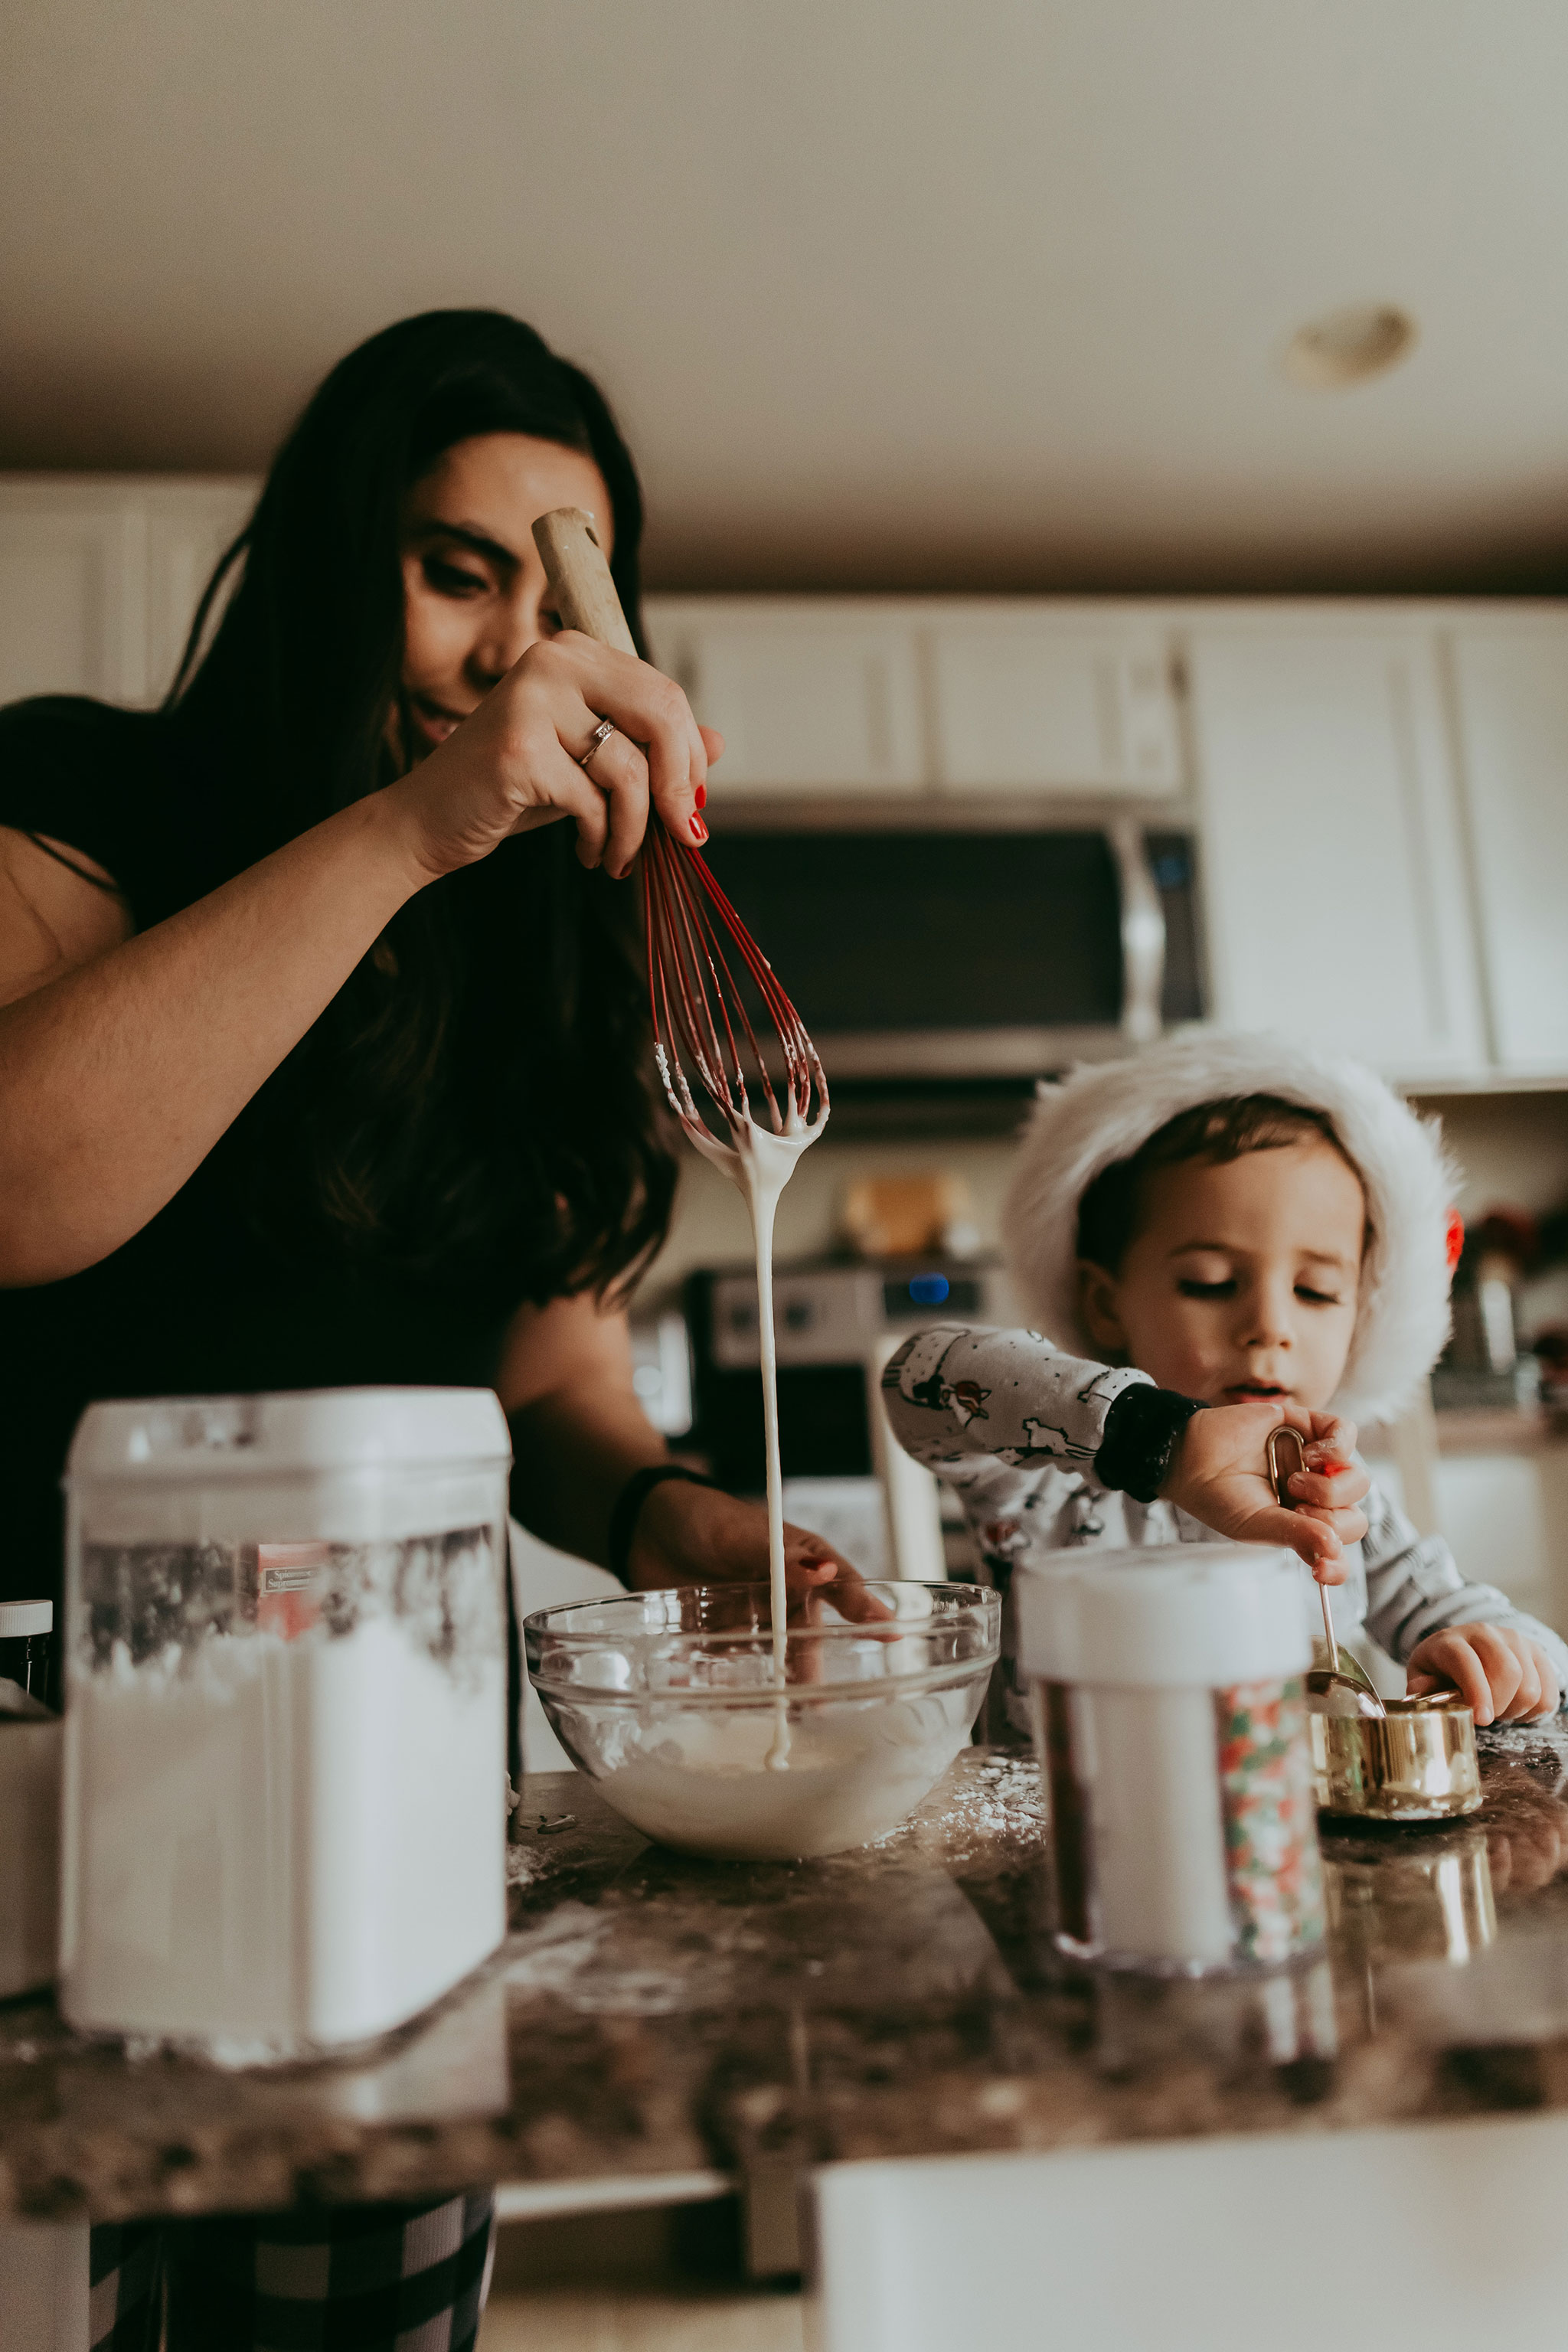 Mom and Son Baking Cookies | PDX Lifestyle Photographer